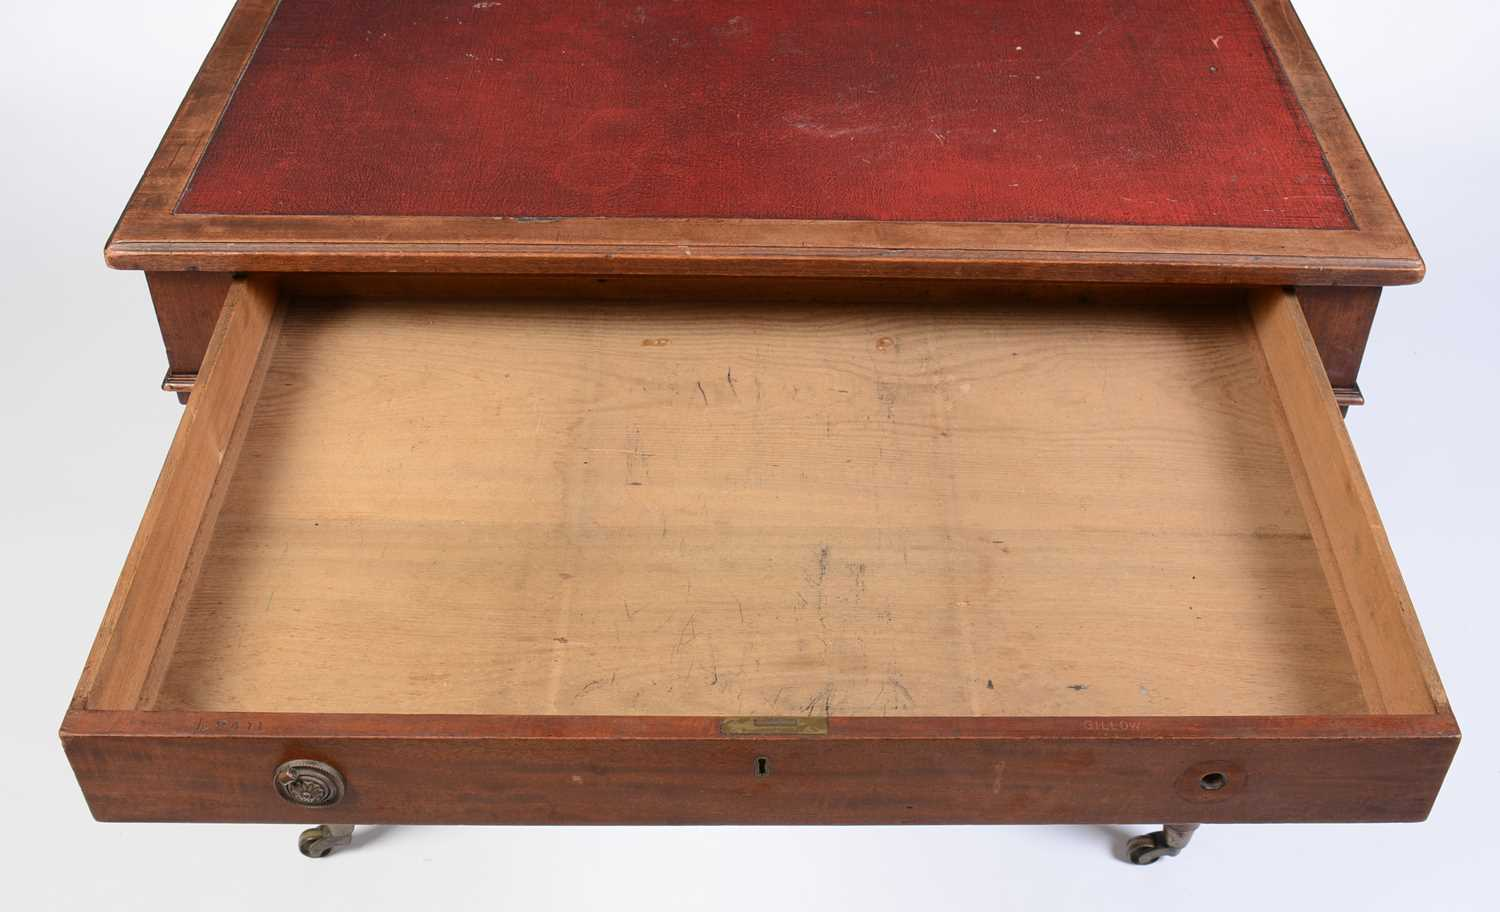 William IV mahogany writing desk stamped Gillow - Image 5 of 11